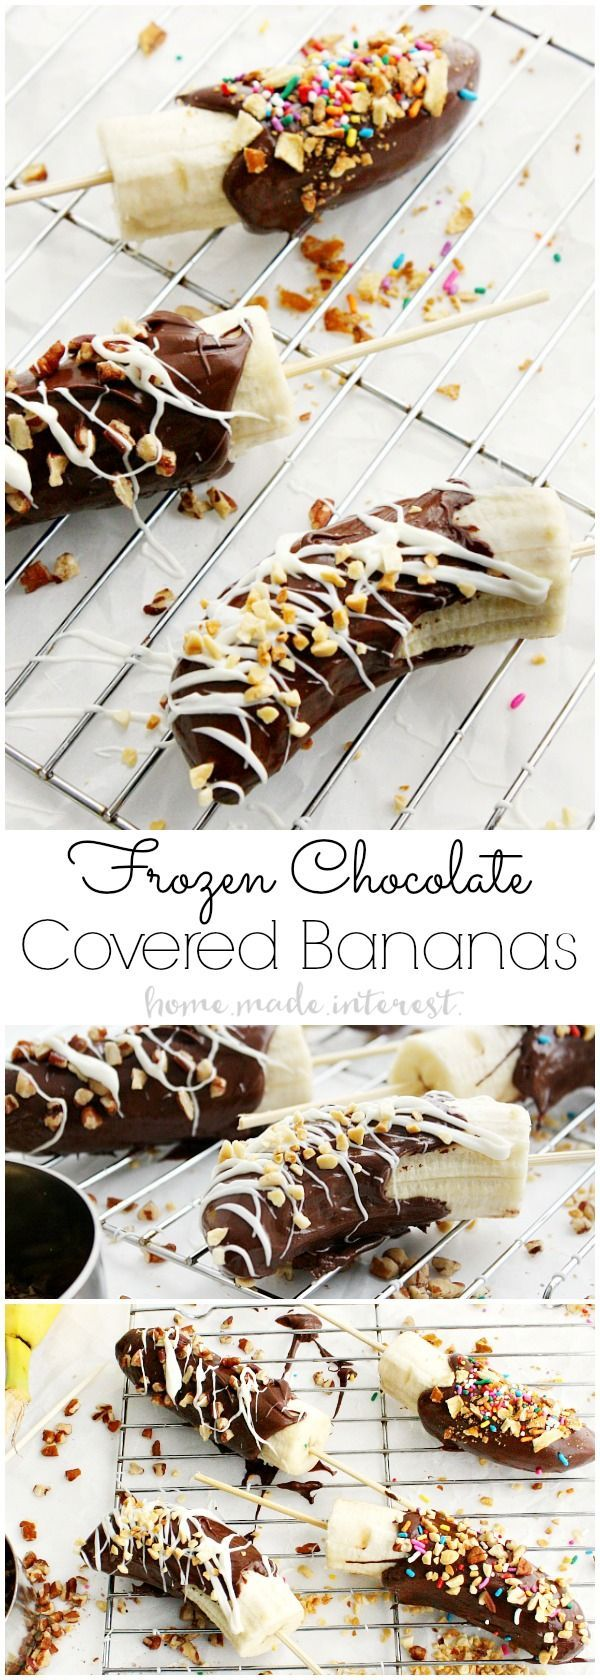 Frozen Chocolate Covered Bananas were always one of my favorite after school snacks and now my kids love this easy snack just as much as I do! This Frozen Chocolate Covered Bananas recipe is easy to make and your kids can have fun sprinkling them with their favorite toppings. Then freeze them for a frozen banana snack! AmznUnderground | ad